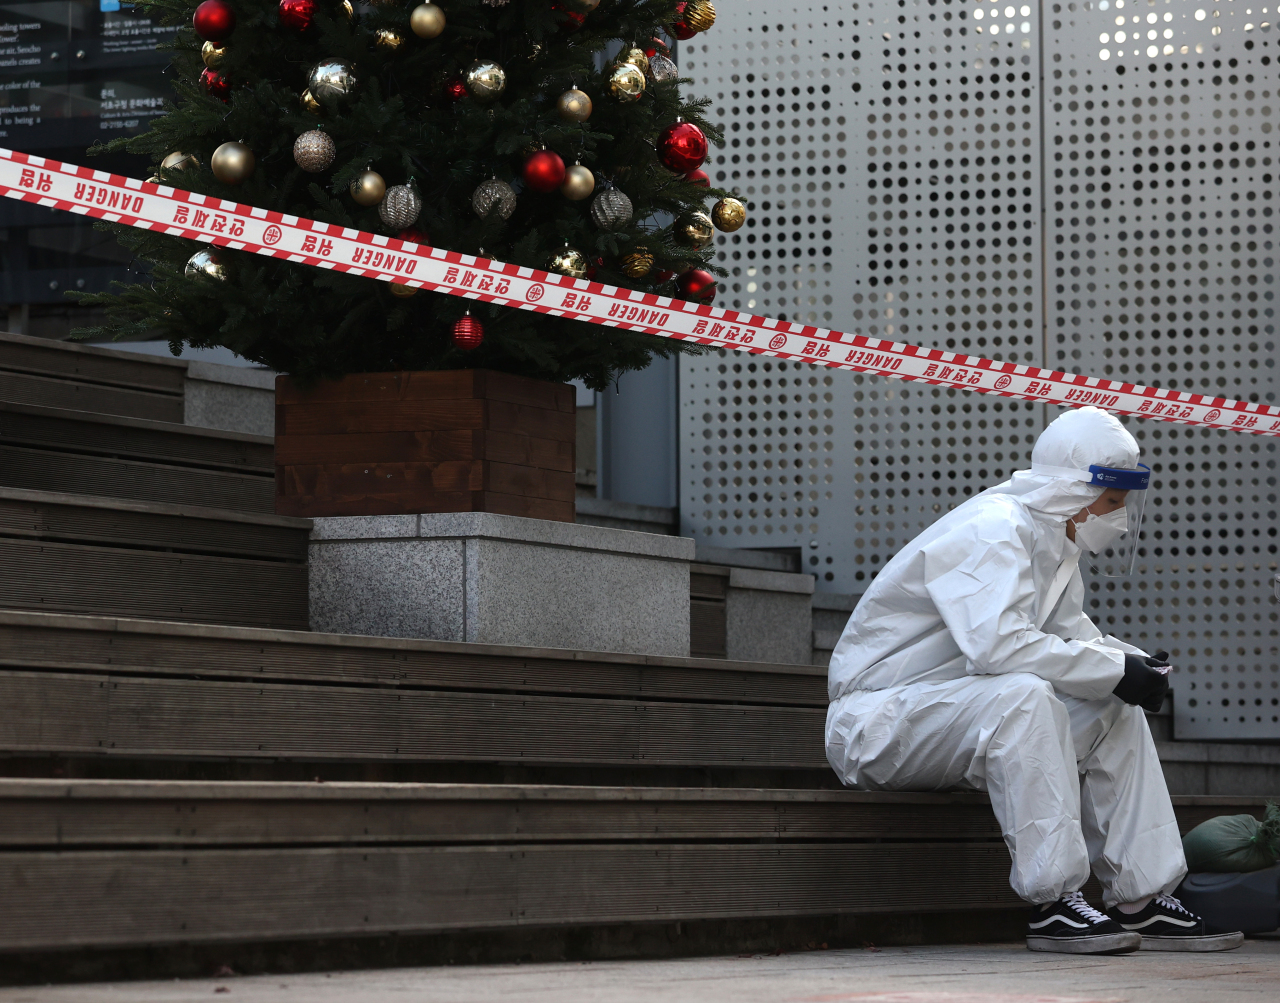 A health care worker wearing personal protective equipment takes a break at a testing center in Seoul on Christmas Eve. (Yonhap)